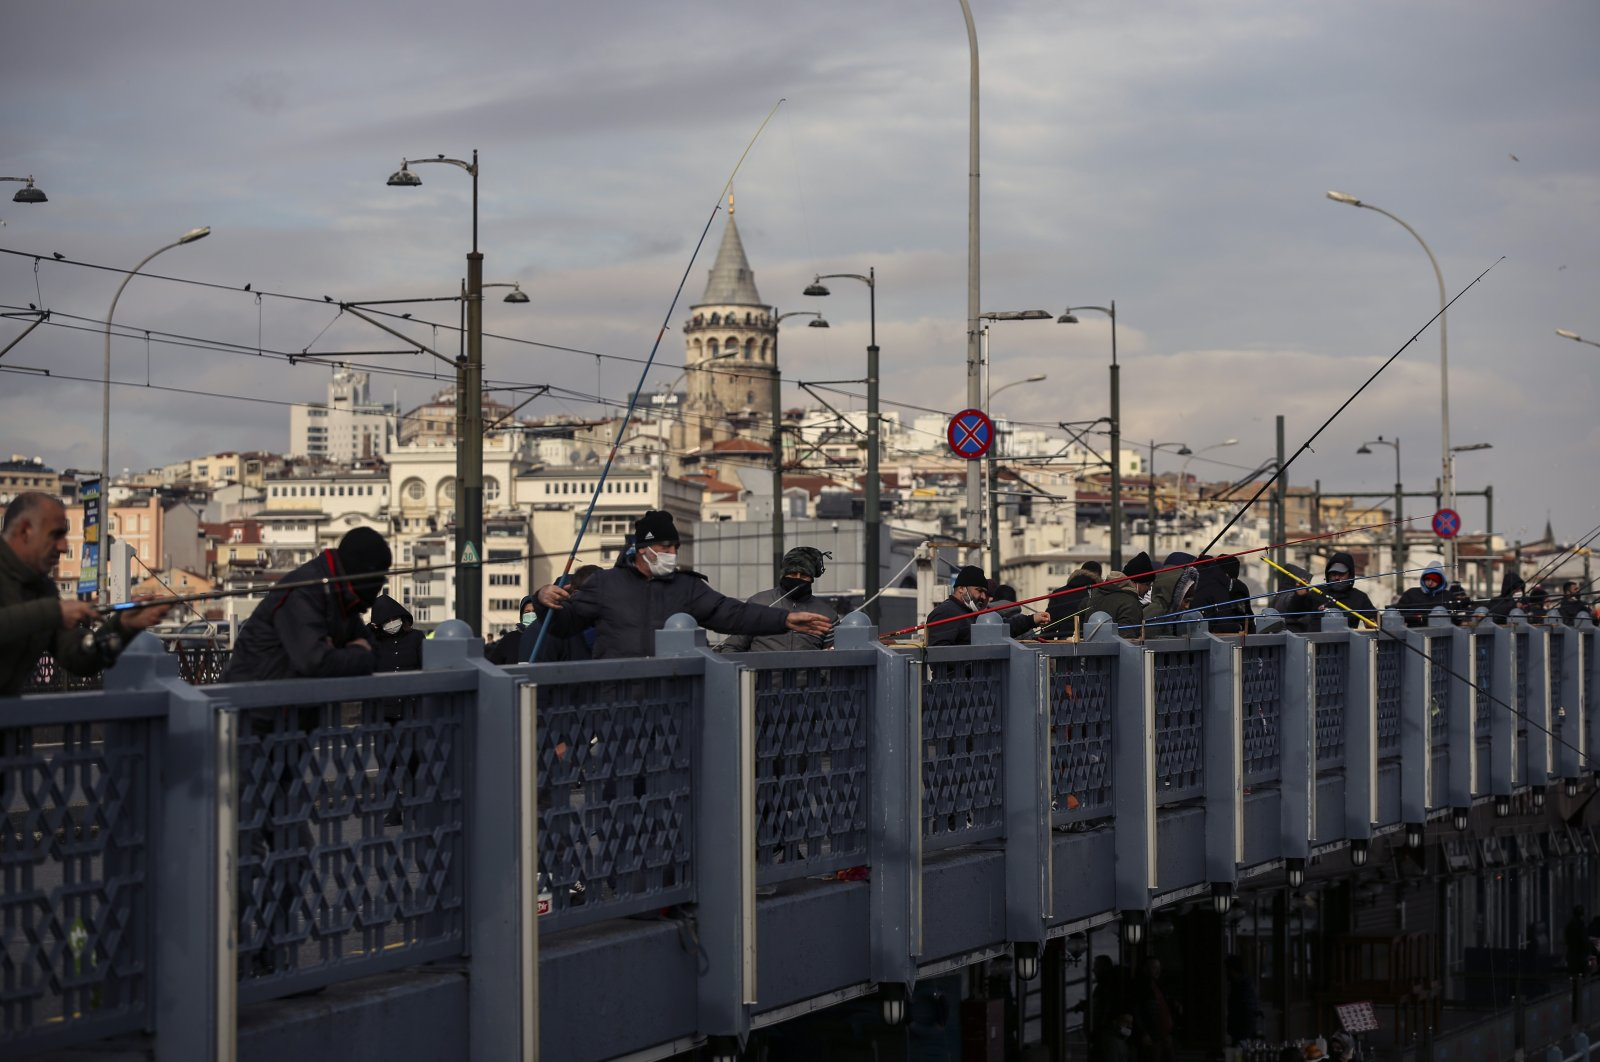 Fishermen wearing masks to help protect against the spread of coronavirus, fish off the Galata Bridge hours before a two-day weekend lockdown, in Istanbul, Friday, Jan. 29, 2021. (AP Photo)